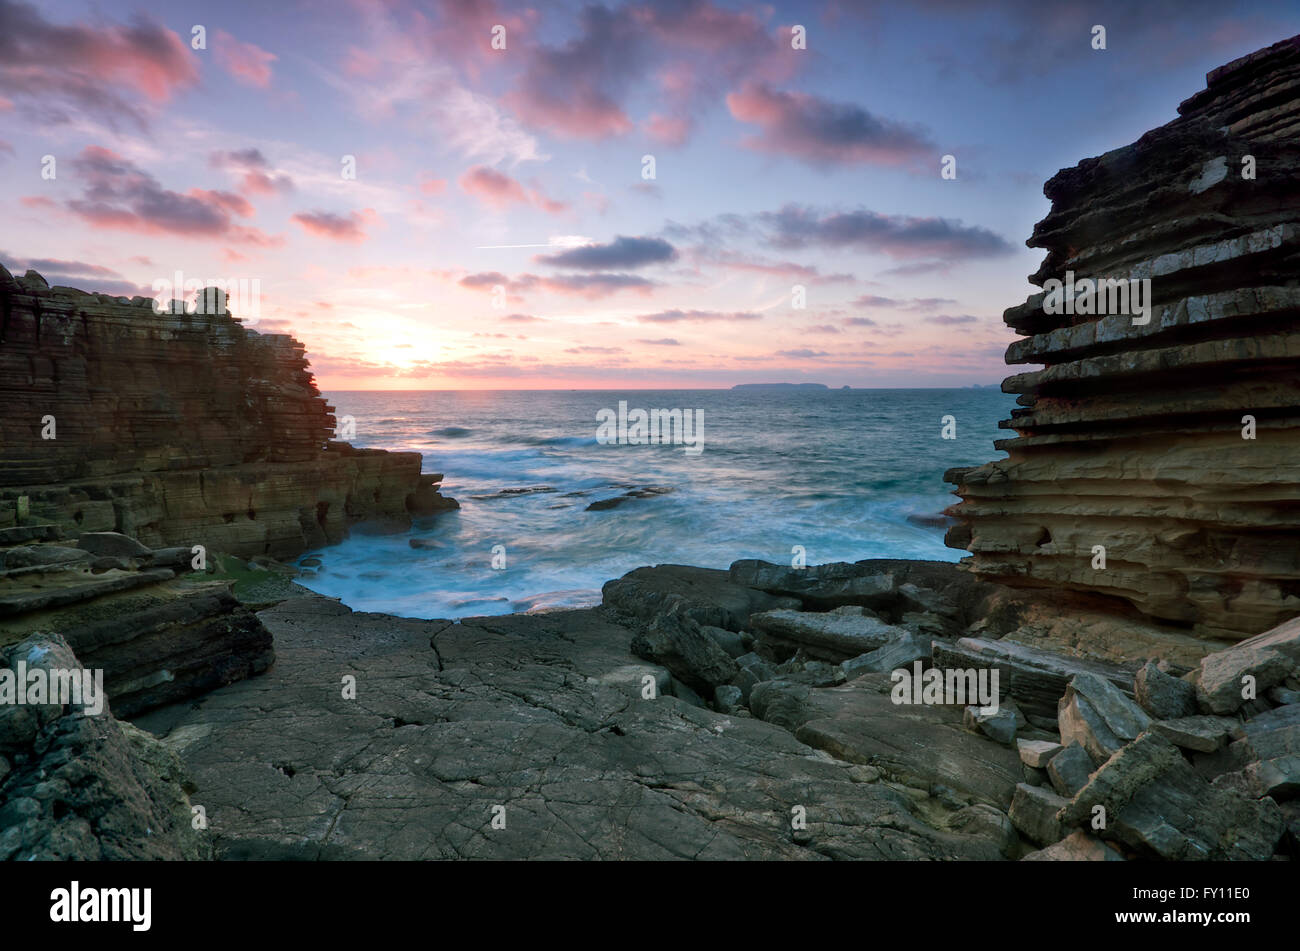 Sunset at Peniche, Portugal - Stock Image